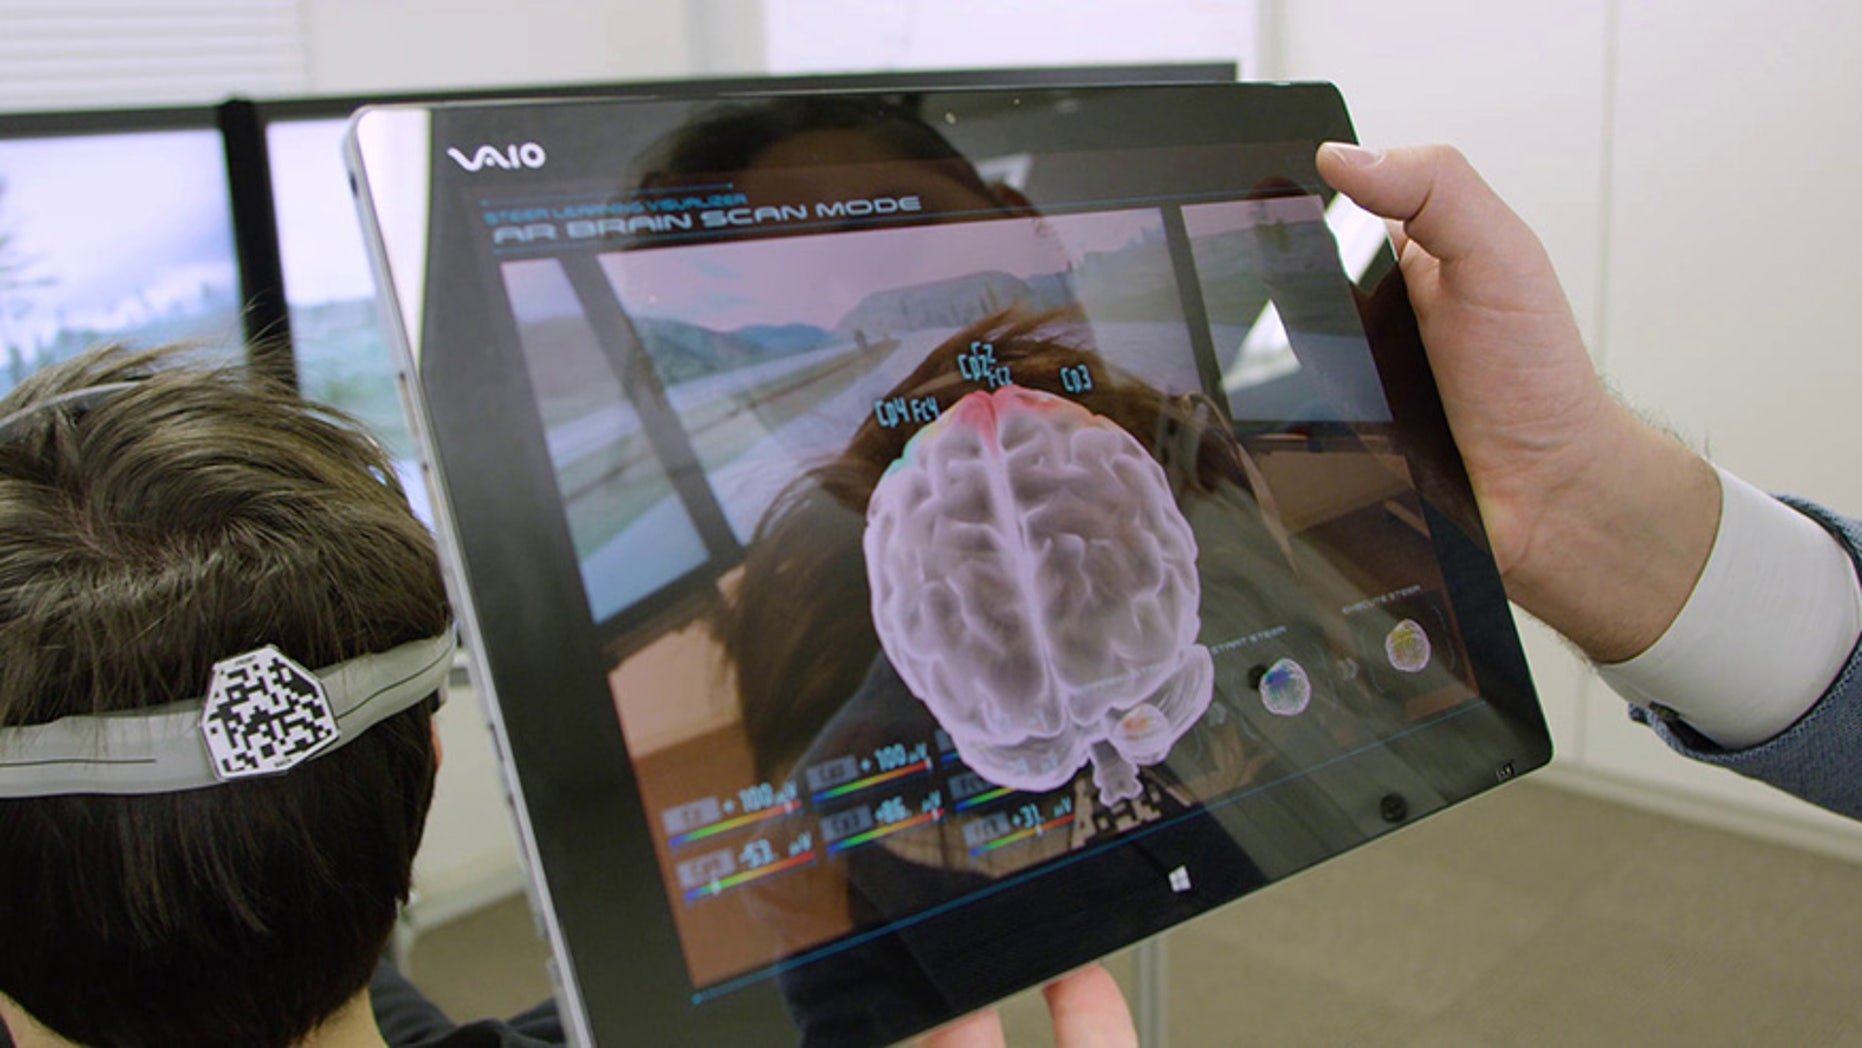 YOKOHAMA, Japan (Jan. 3, 2017) – Nissan unveiled research today that will enable vehicles to interpret signals from the driver's brain, redefining how people interact with their cars. The company's Brain-to-Vehicle, or B2V, technology promises to speed up reaction times for drivers and will lead to cars that keep adapting to make driving more enjoyable.